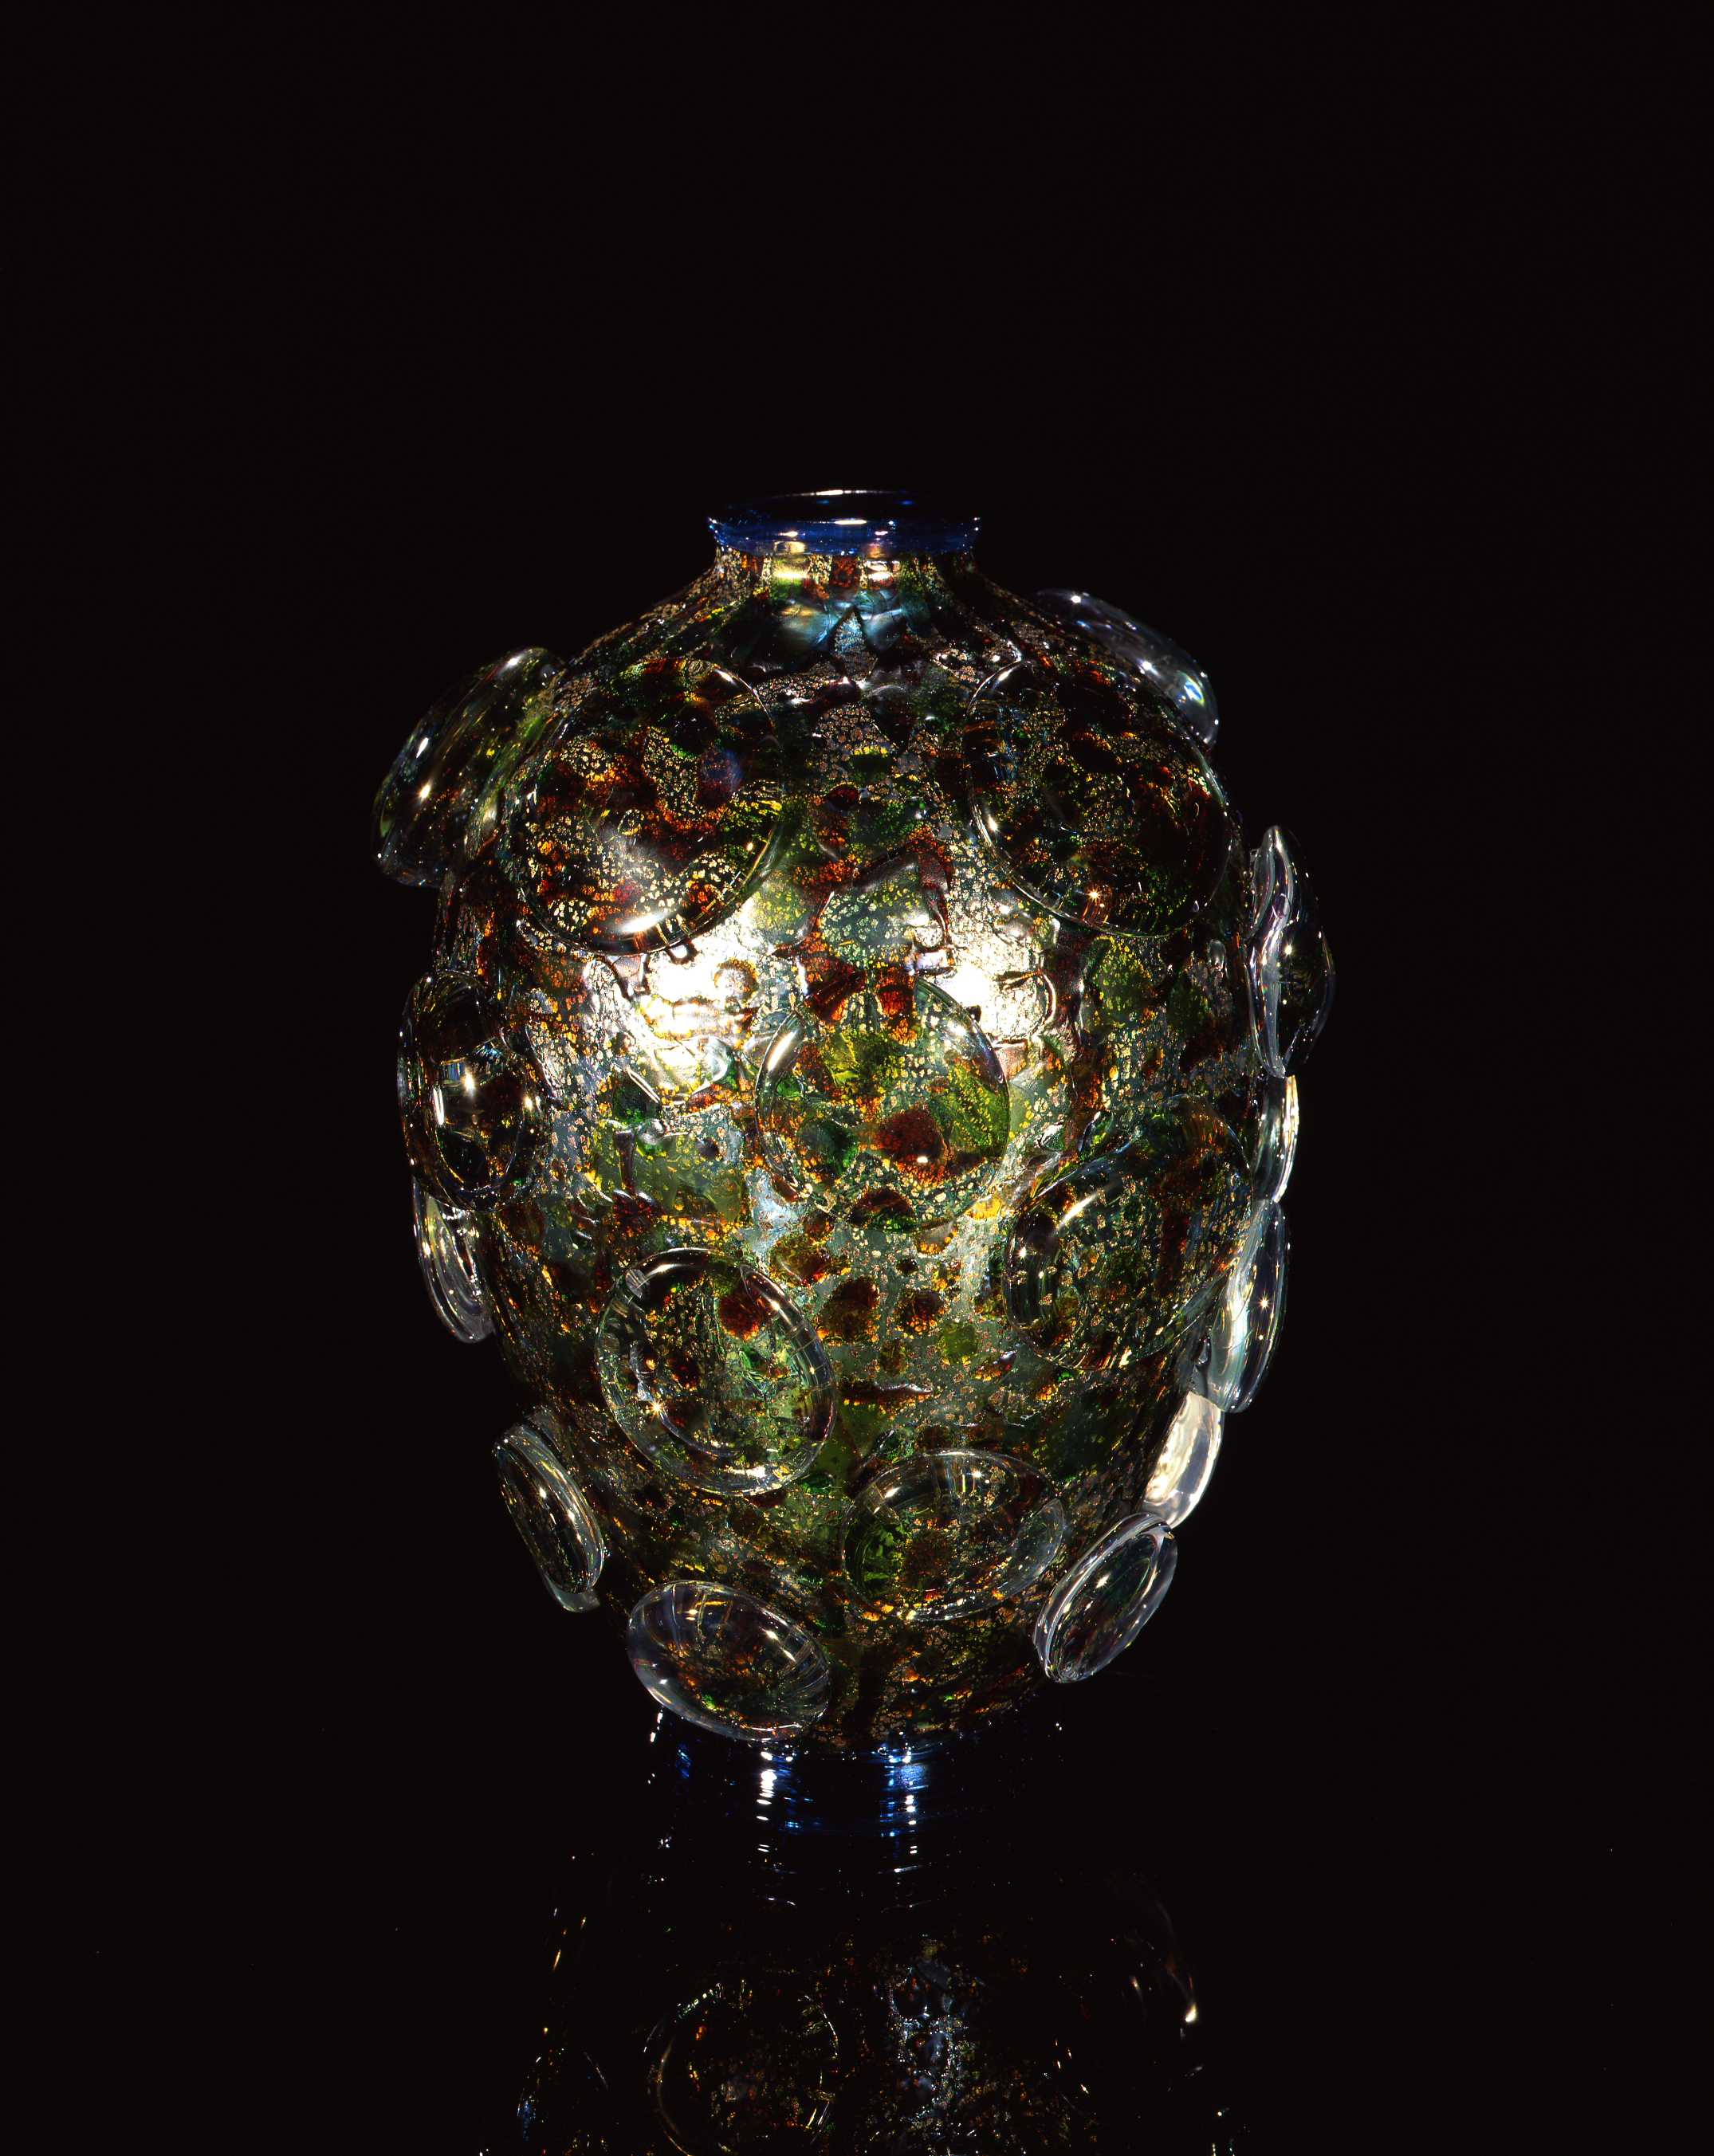 Dale Chihuly,  Imp Green Piccolo Venetian with Gold Leaf  (1997, glass, 9 x 7 x 6 inches)